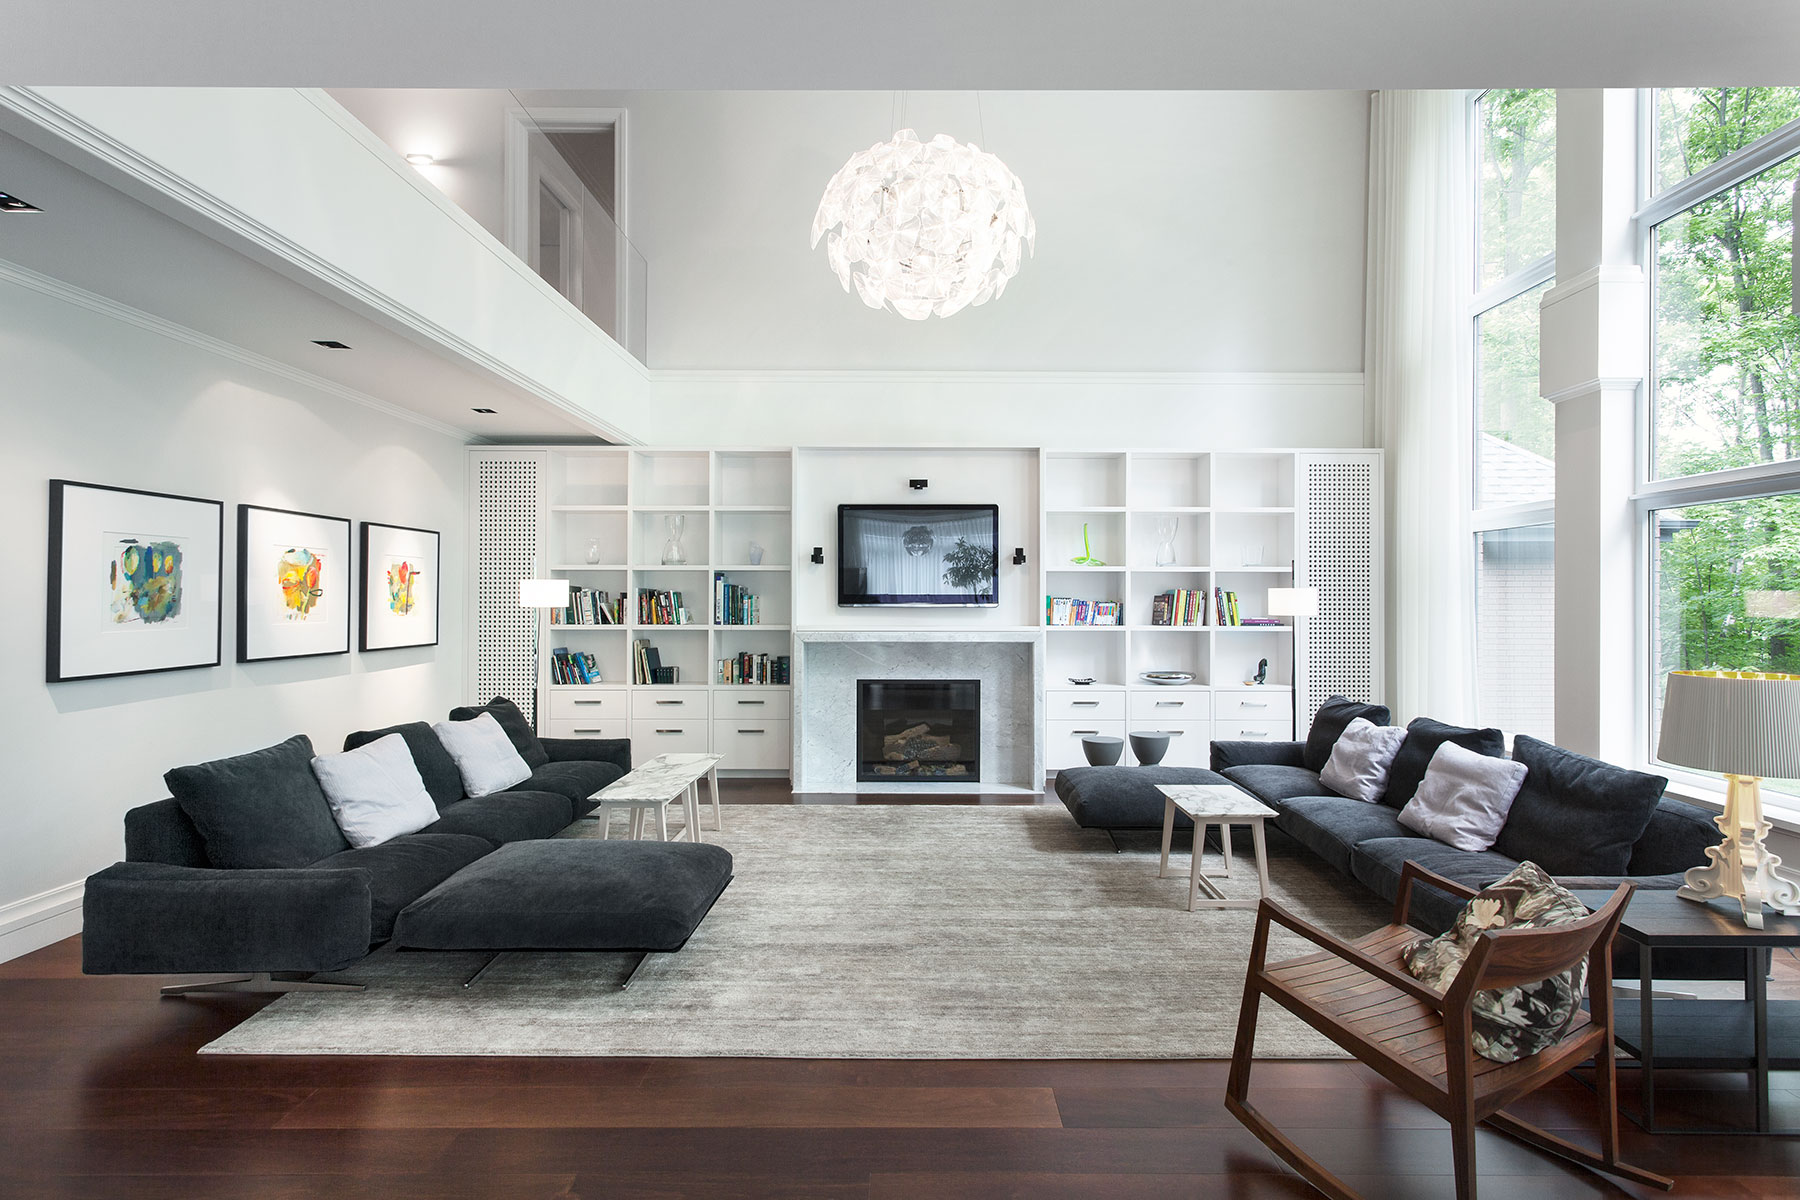 11 Awesome And Trendy Modern Living Room Design Ideas  Awesome 11